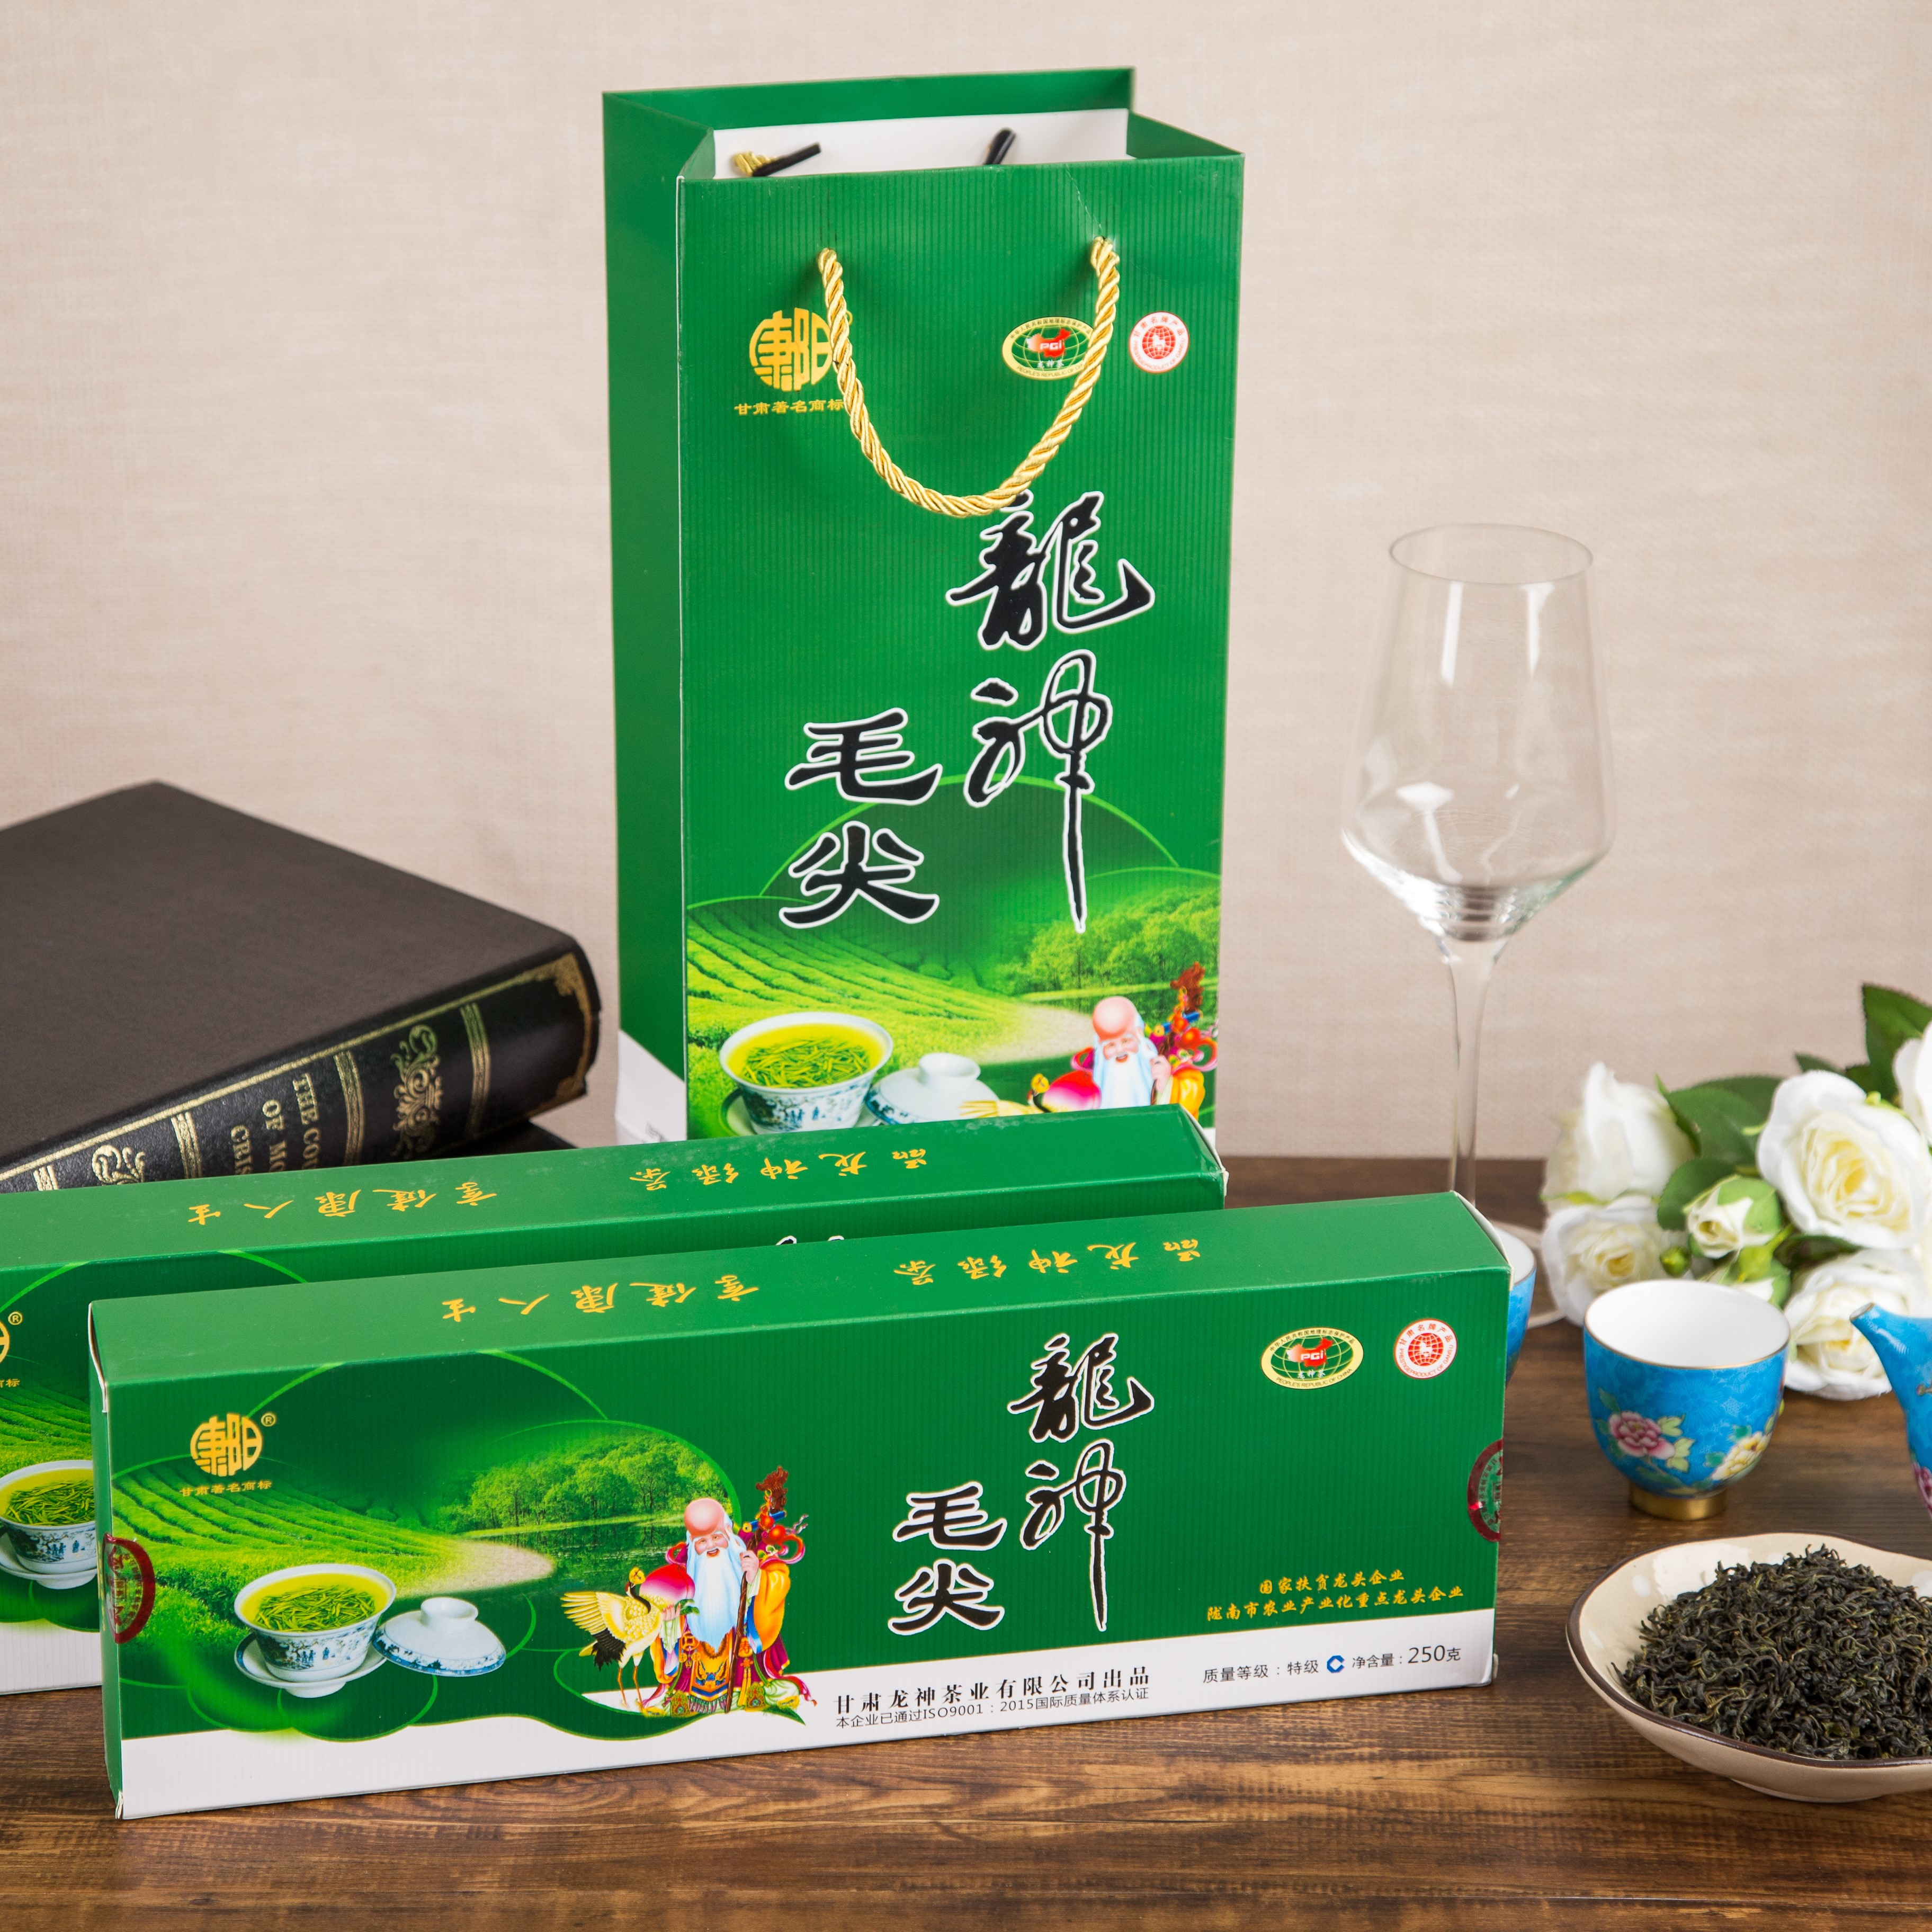 Online tea shop order tea oil soluble green tea - 4uTea | 4uTea.com